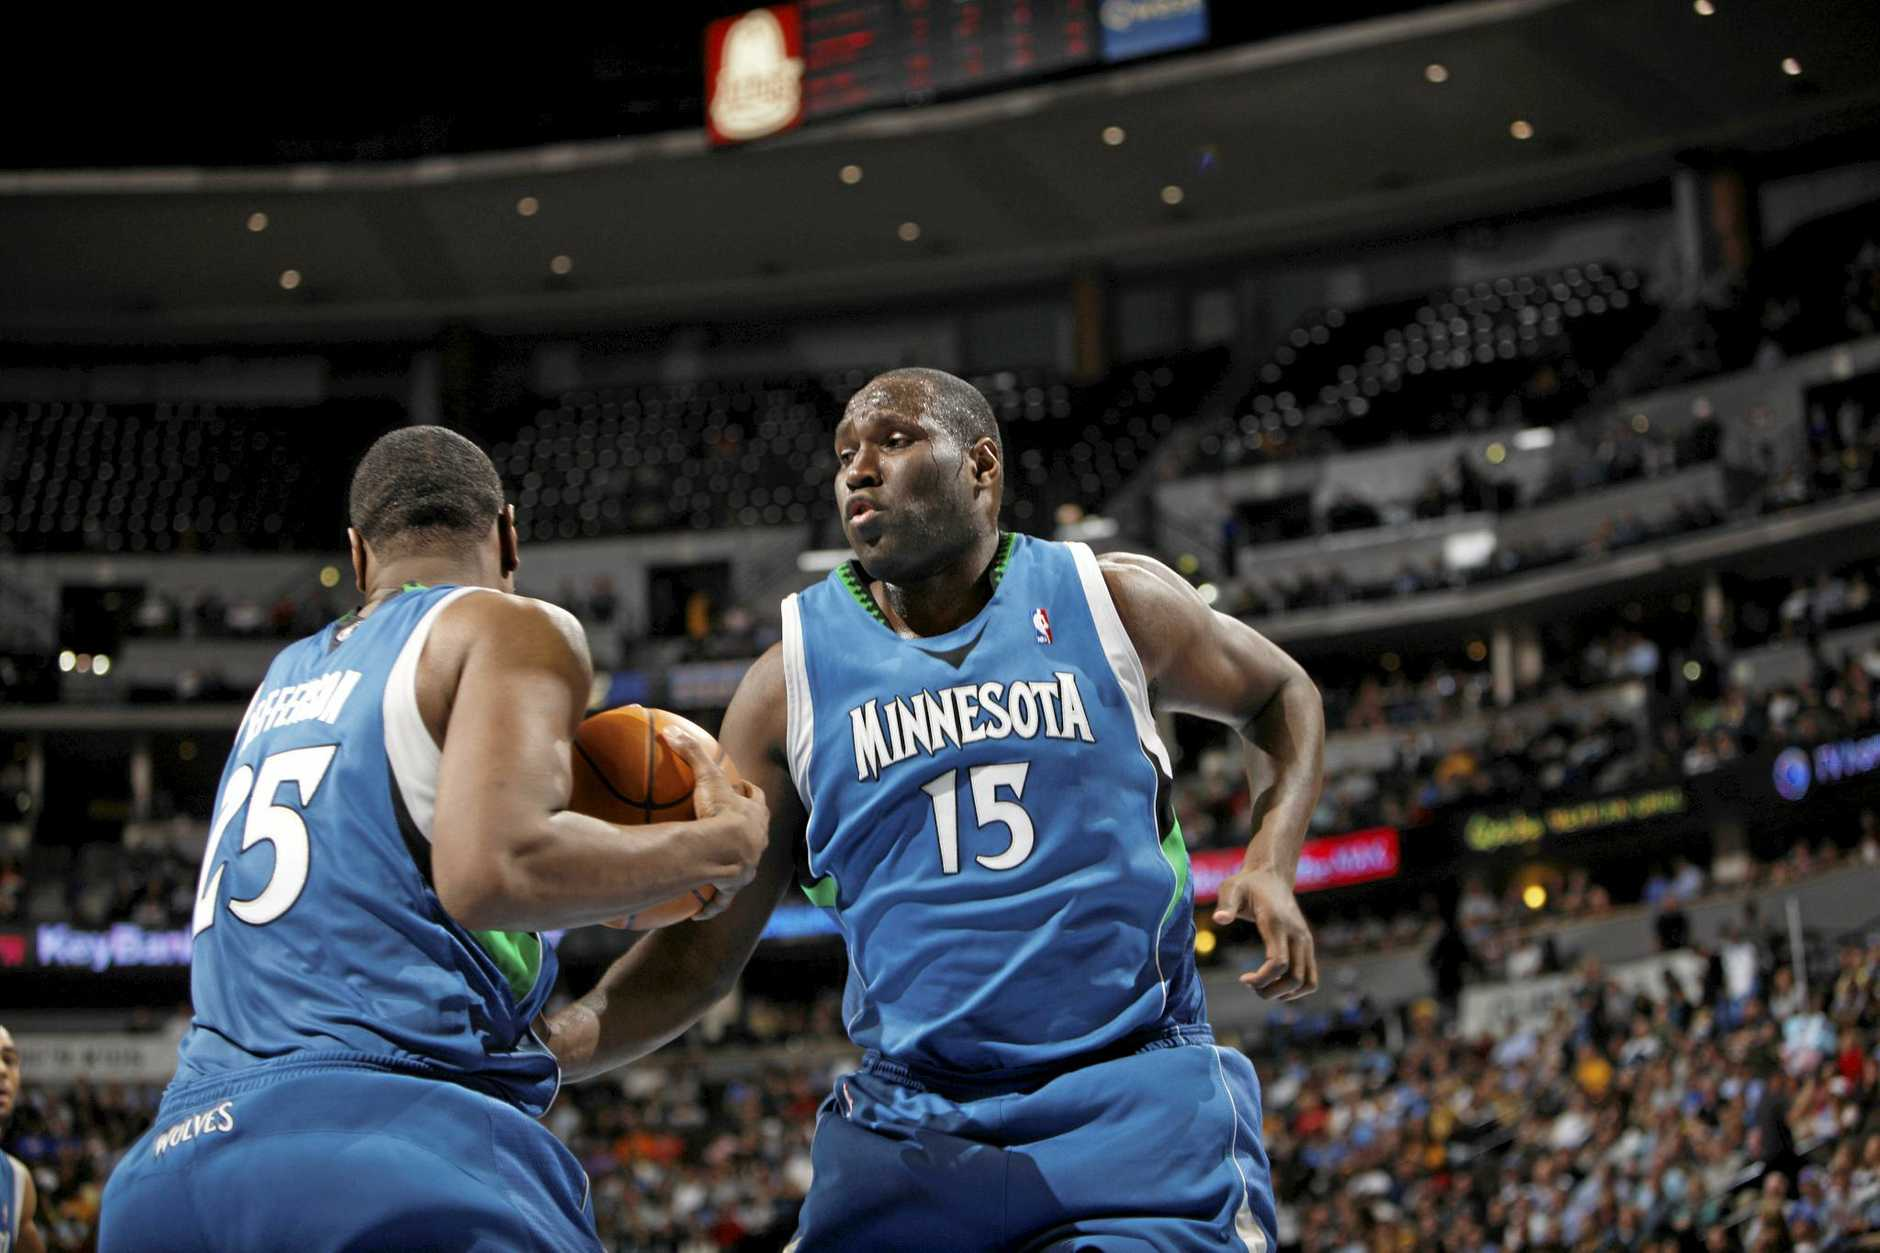 Minnesota Timberwolves forwards Al Jefferson, left, and Nathan Jawai, of Australia, get tangled up while pulling down a rebound while facing the Denver Nuggets during the Nuggets' 105-94 victory in an NBA basketball game in Denver on Monday, Jan. 11, 2010. (AP Photo/David Zalubowski)